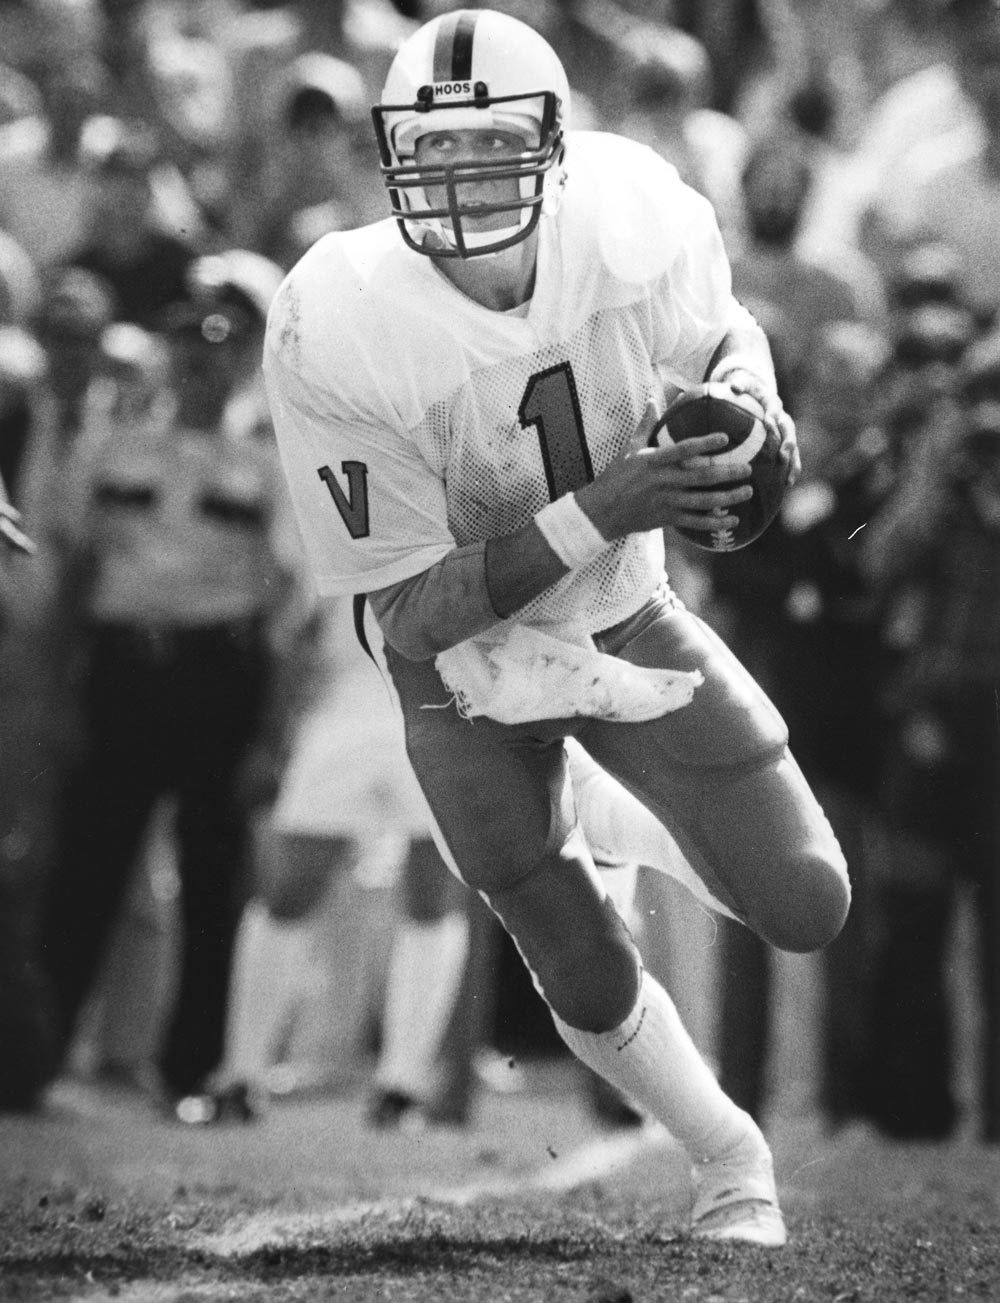 After graduating from UVA, Majkowski played for Green Bay, Indianapolis and Detroit during a 10-year NFL career.